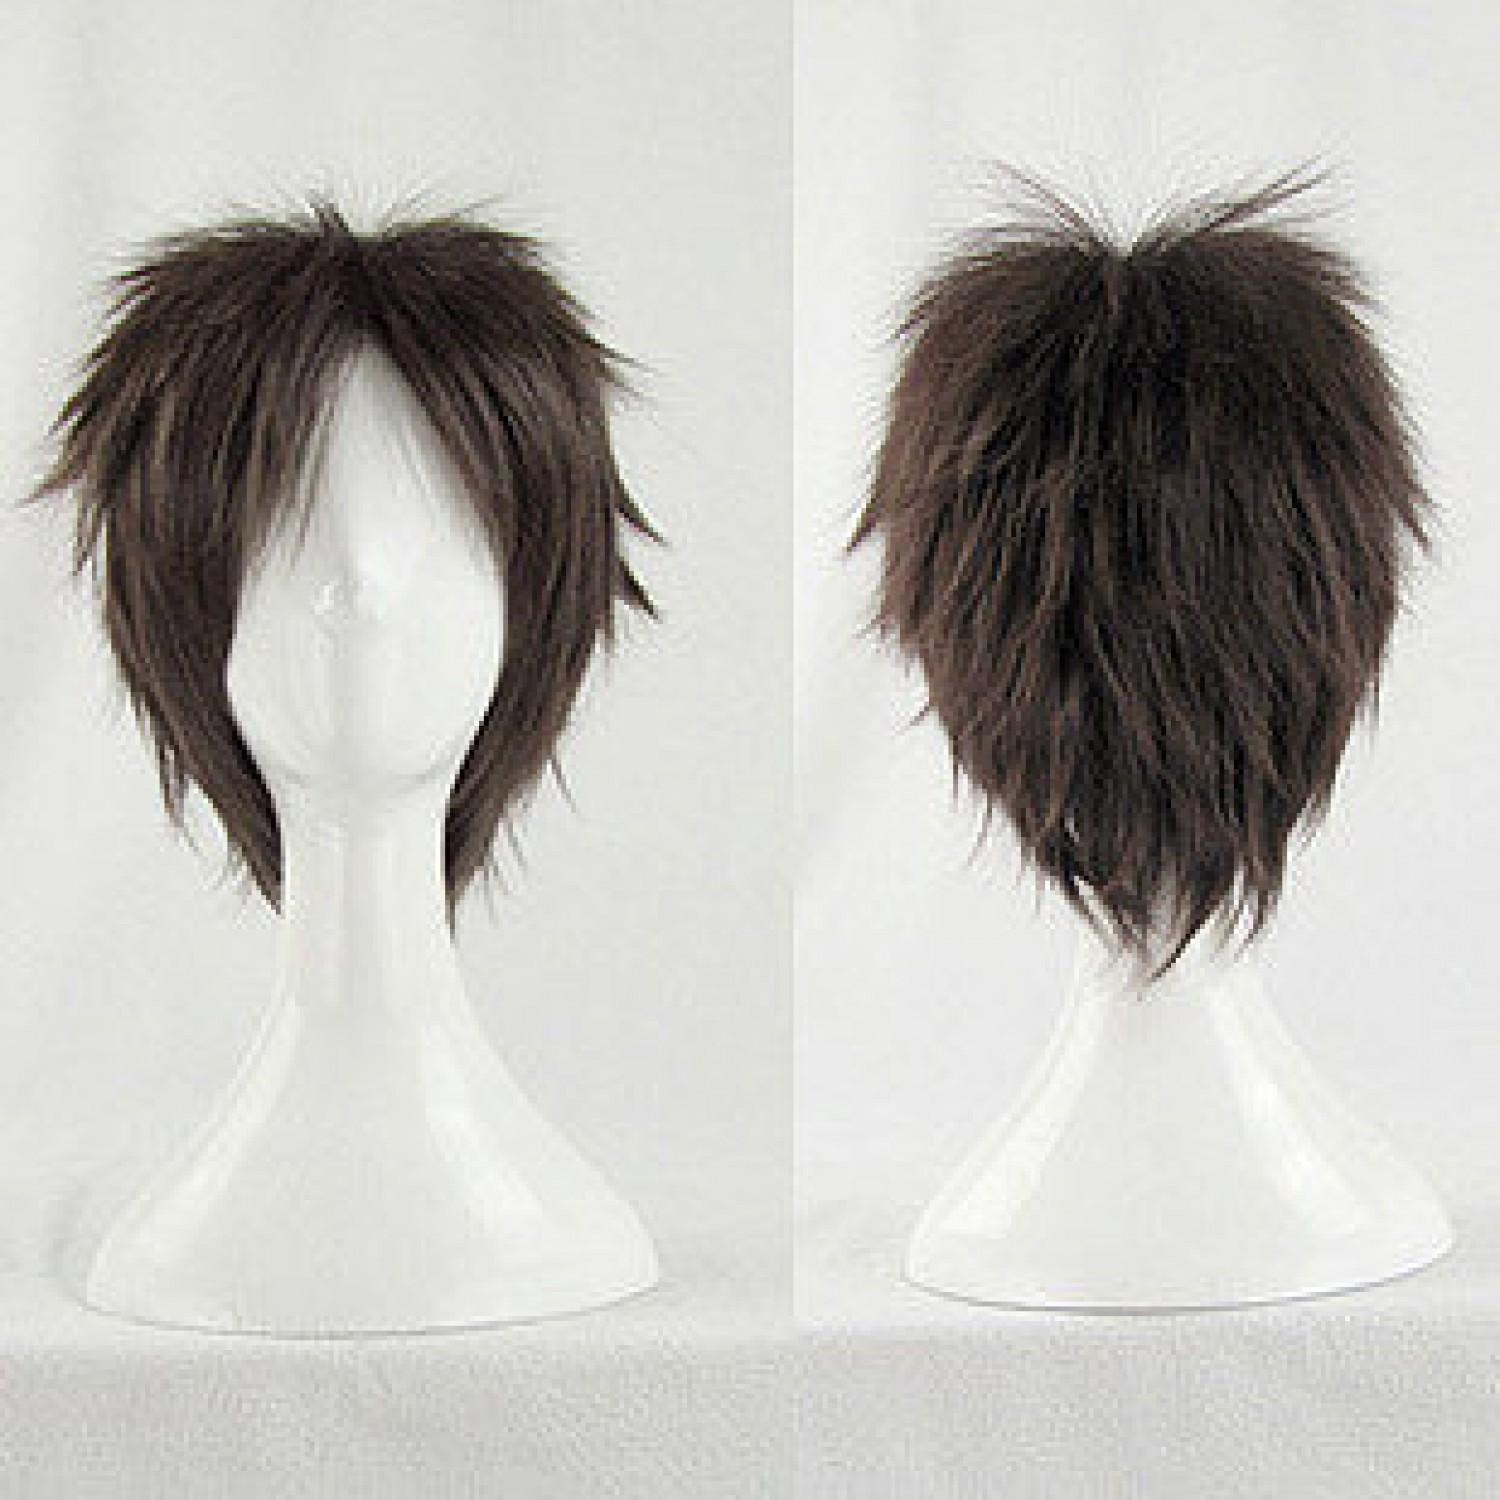 Attack on Titan Eren Jaeger Cosplay Wig